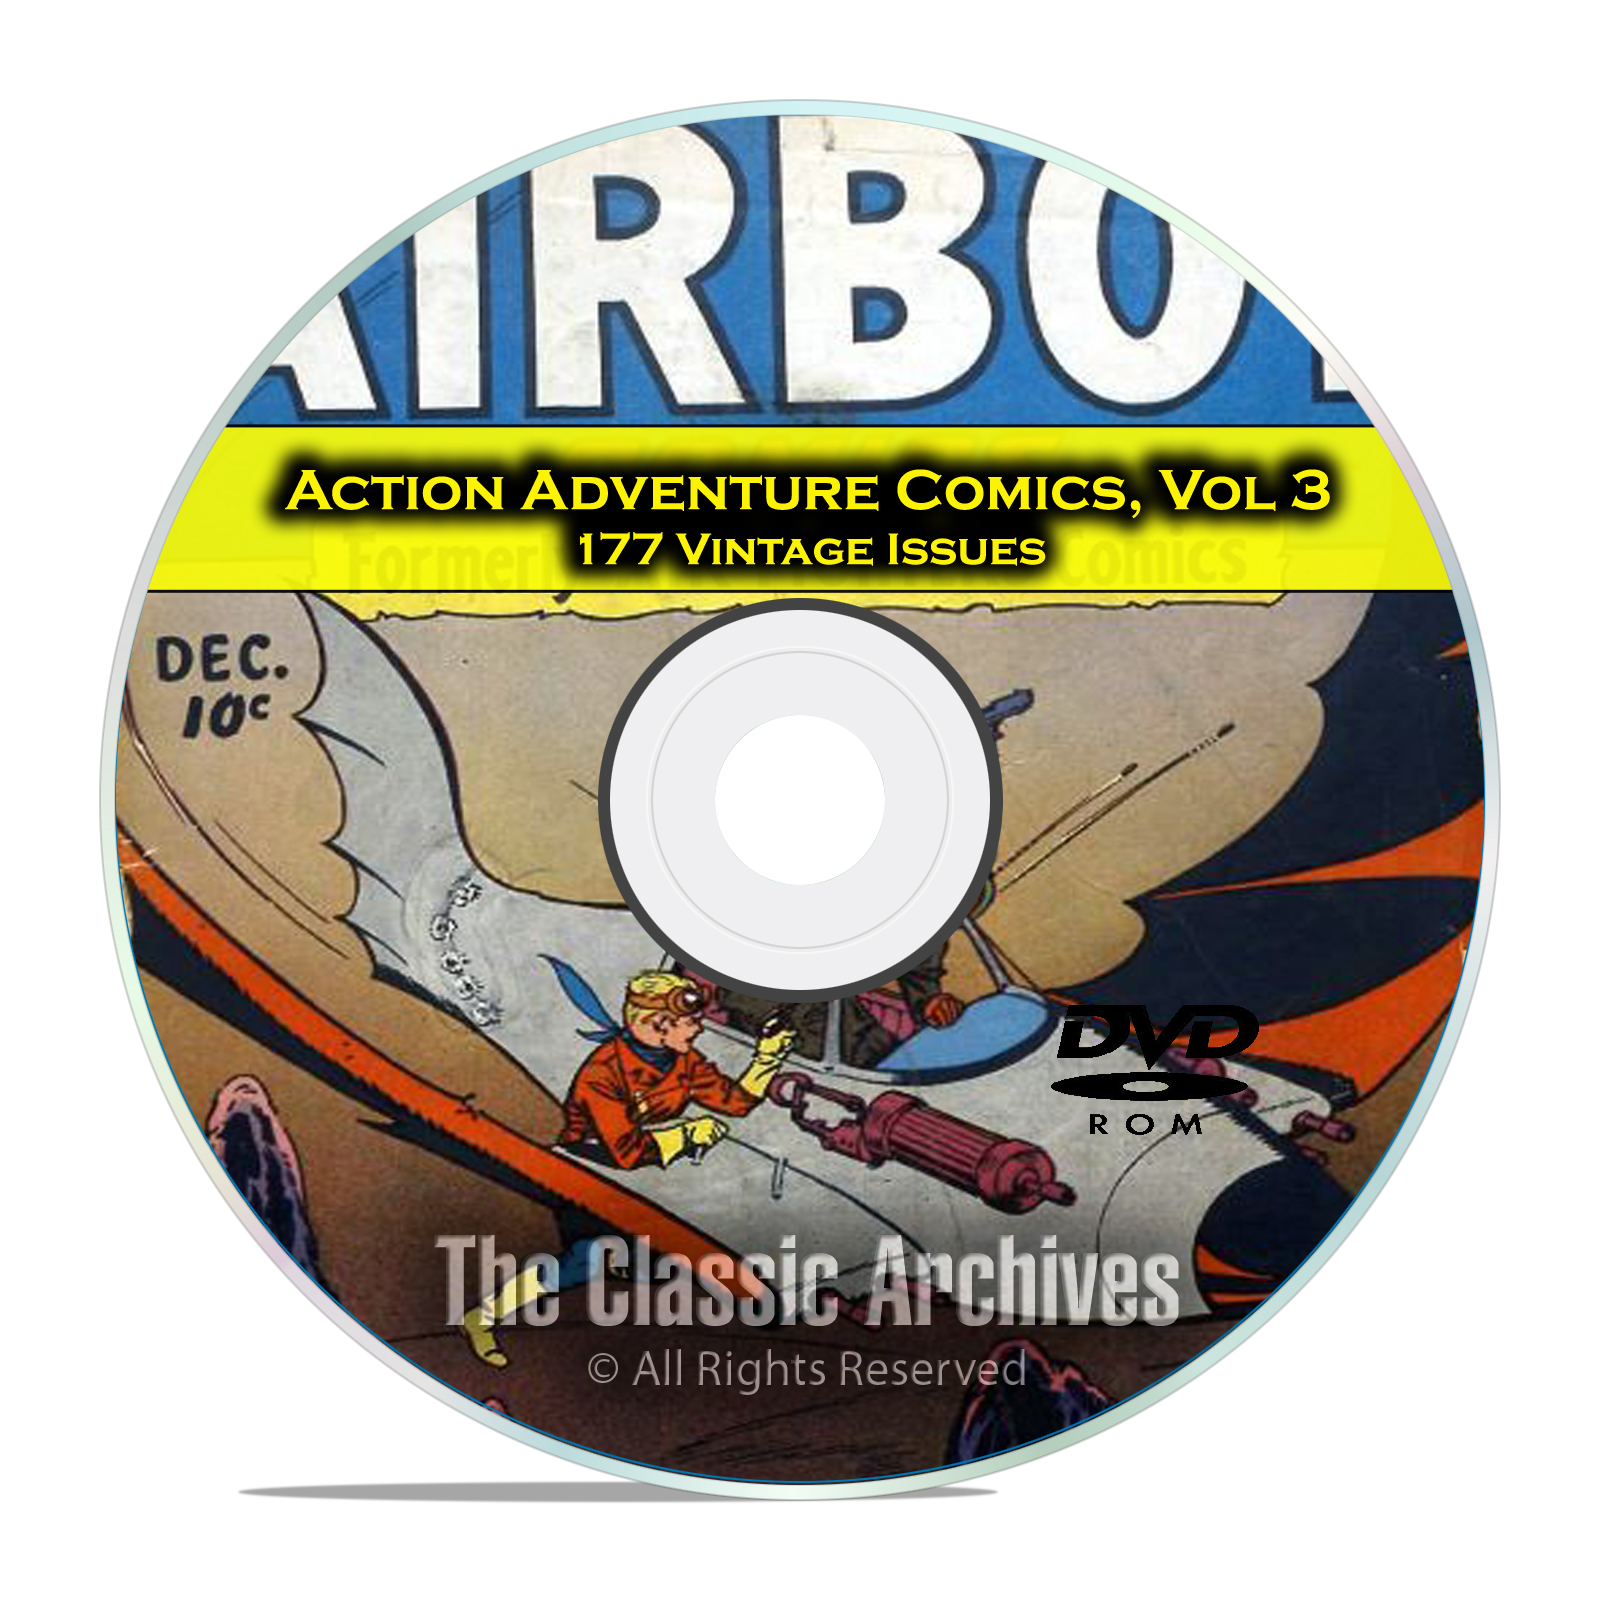 Action Adventure Comics, Vol 3, Airboy Jo Jo, Rulah, Jungle, Golden Age DVD